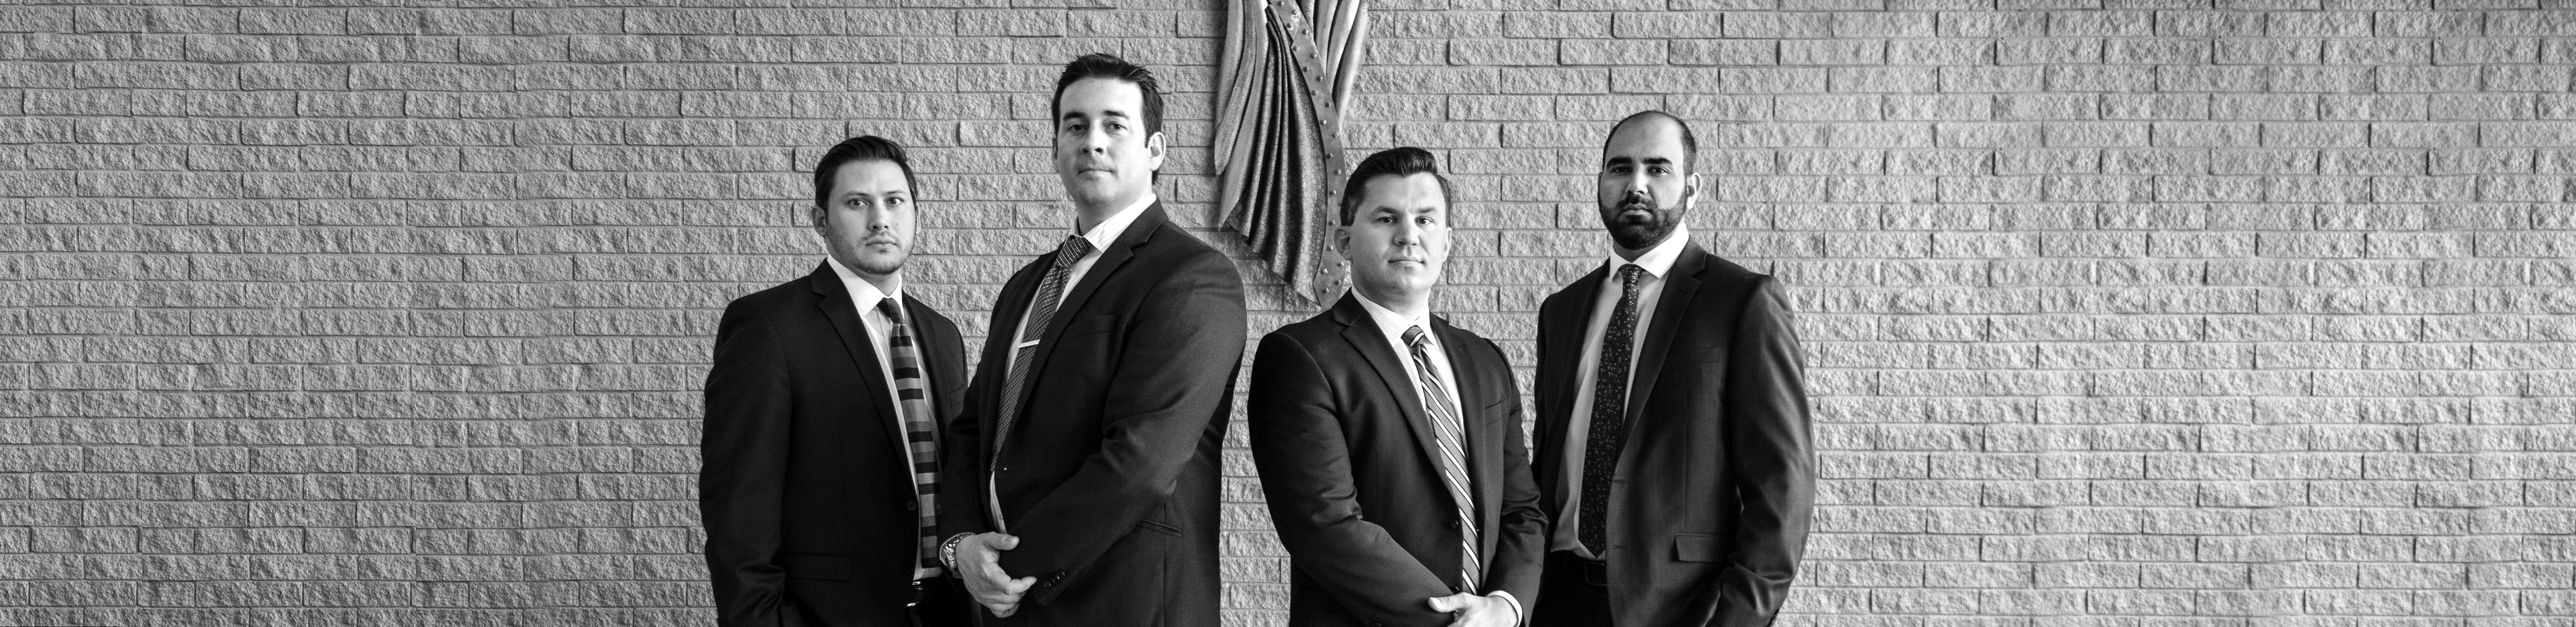 abogados de defensa criminal en phoenix, arizona